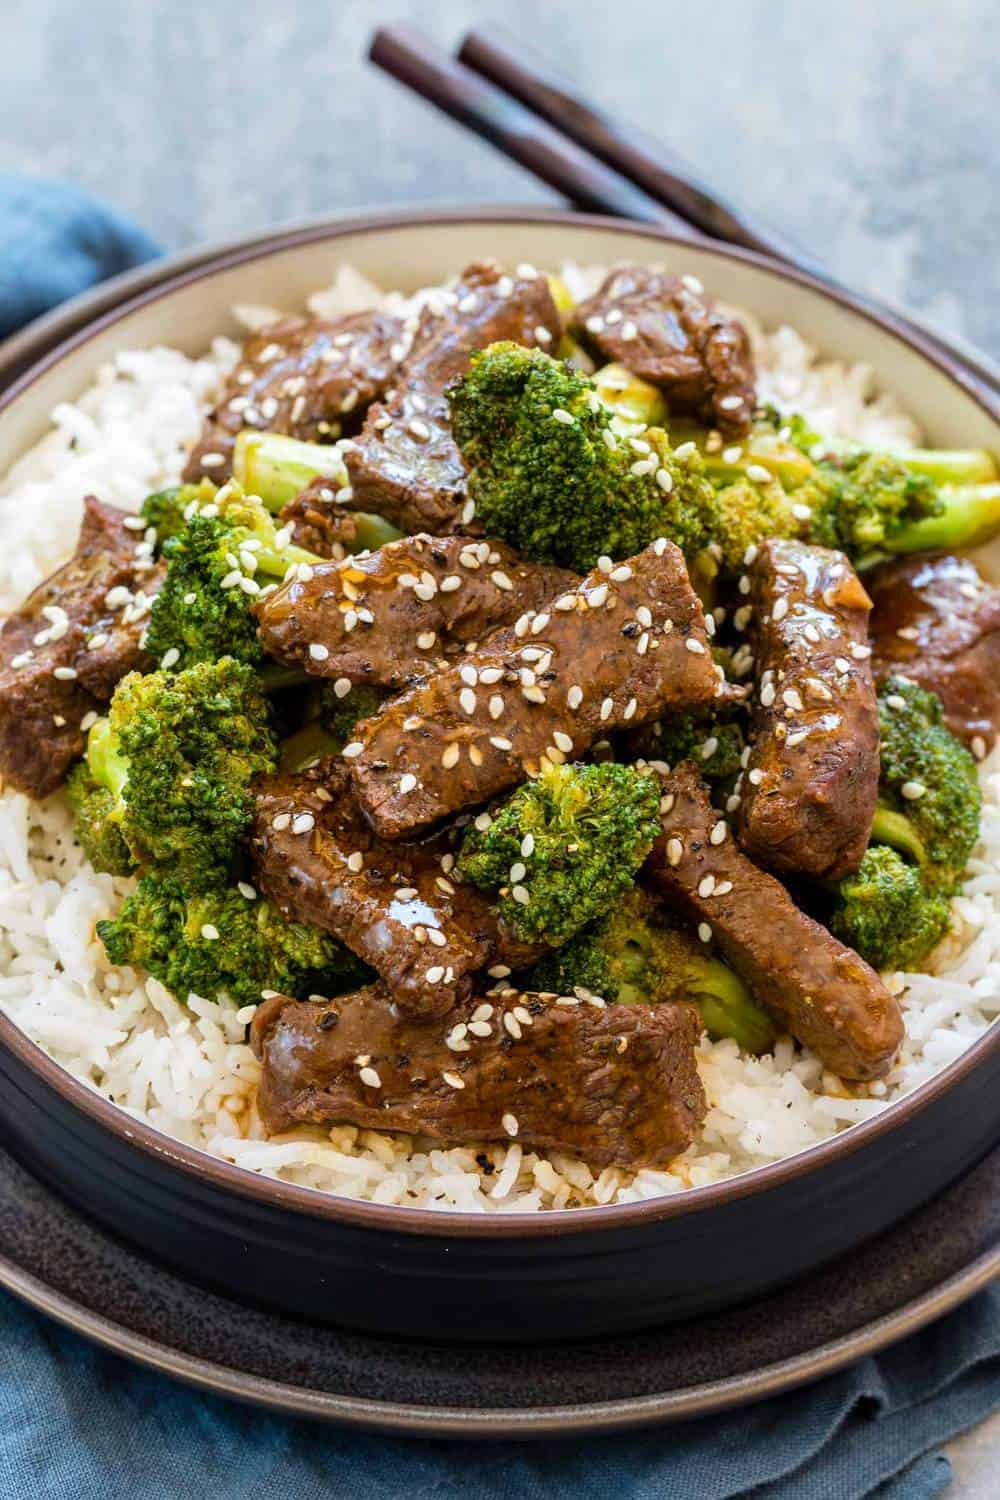 Instant Pot Beef and Broccoli over a bed of rice